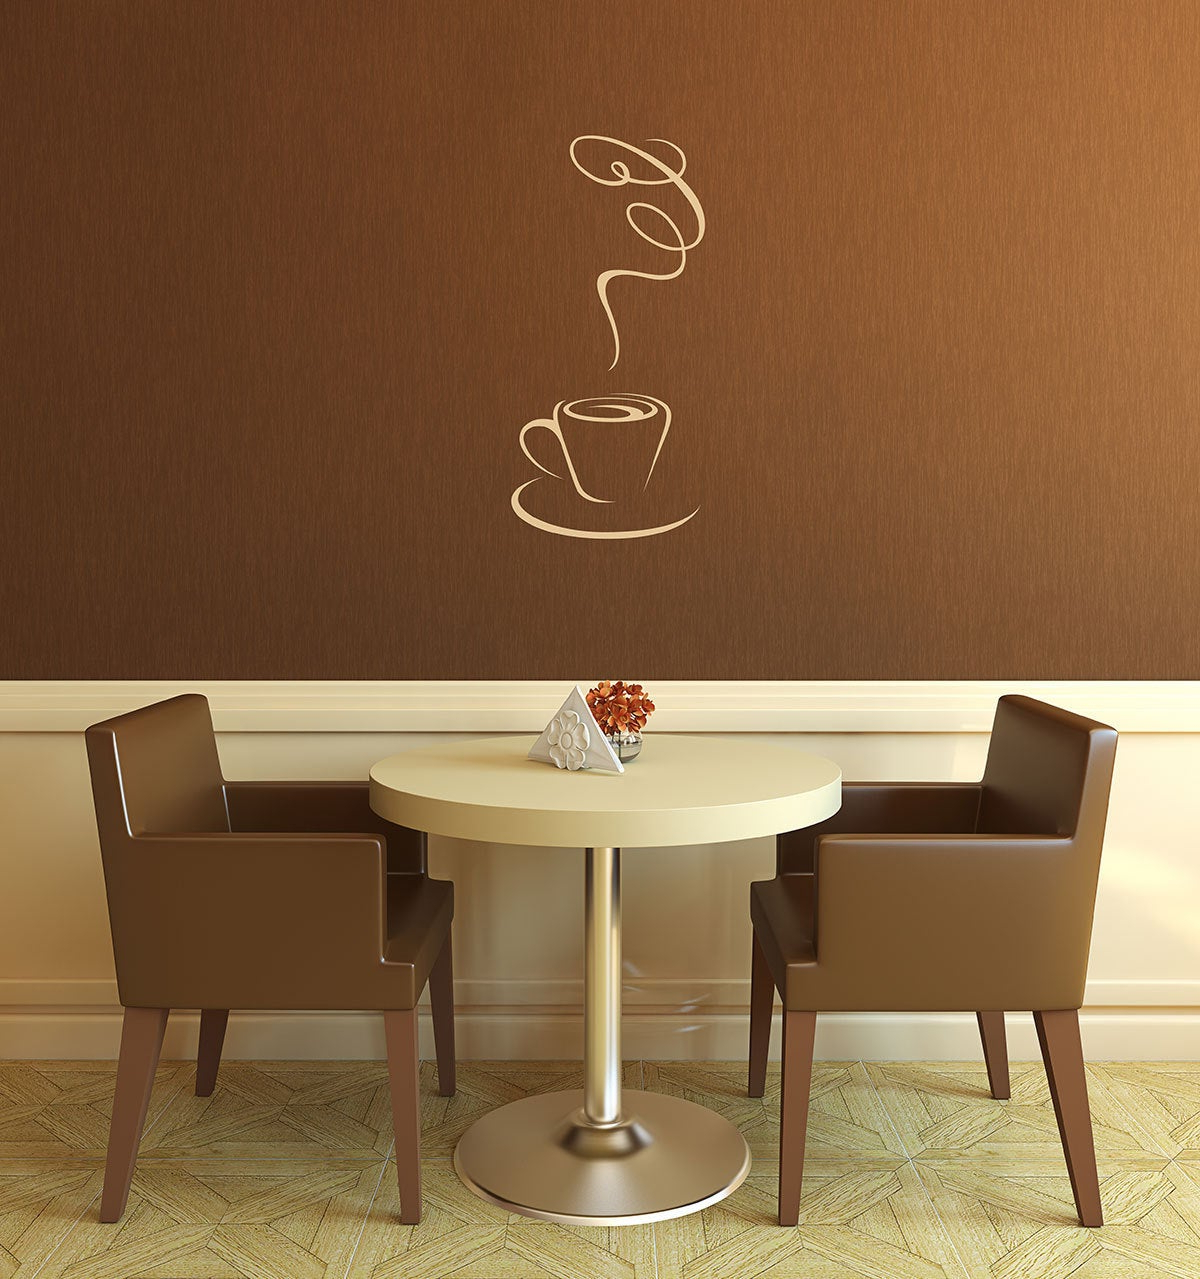 Current Coffee Wall Decal Coffee Shop Coffee Lover Kitchen Wall (View 9 of 20)